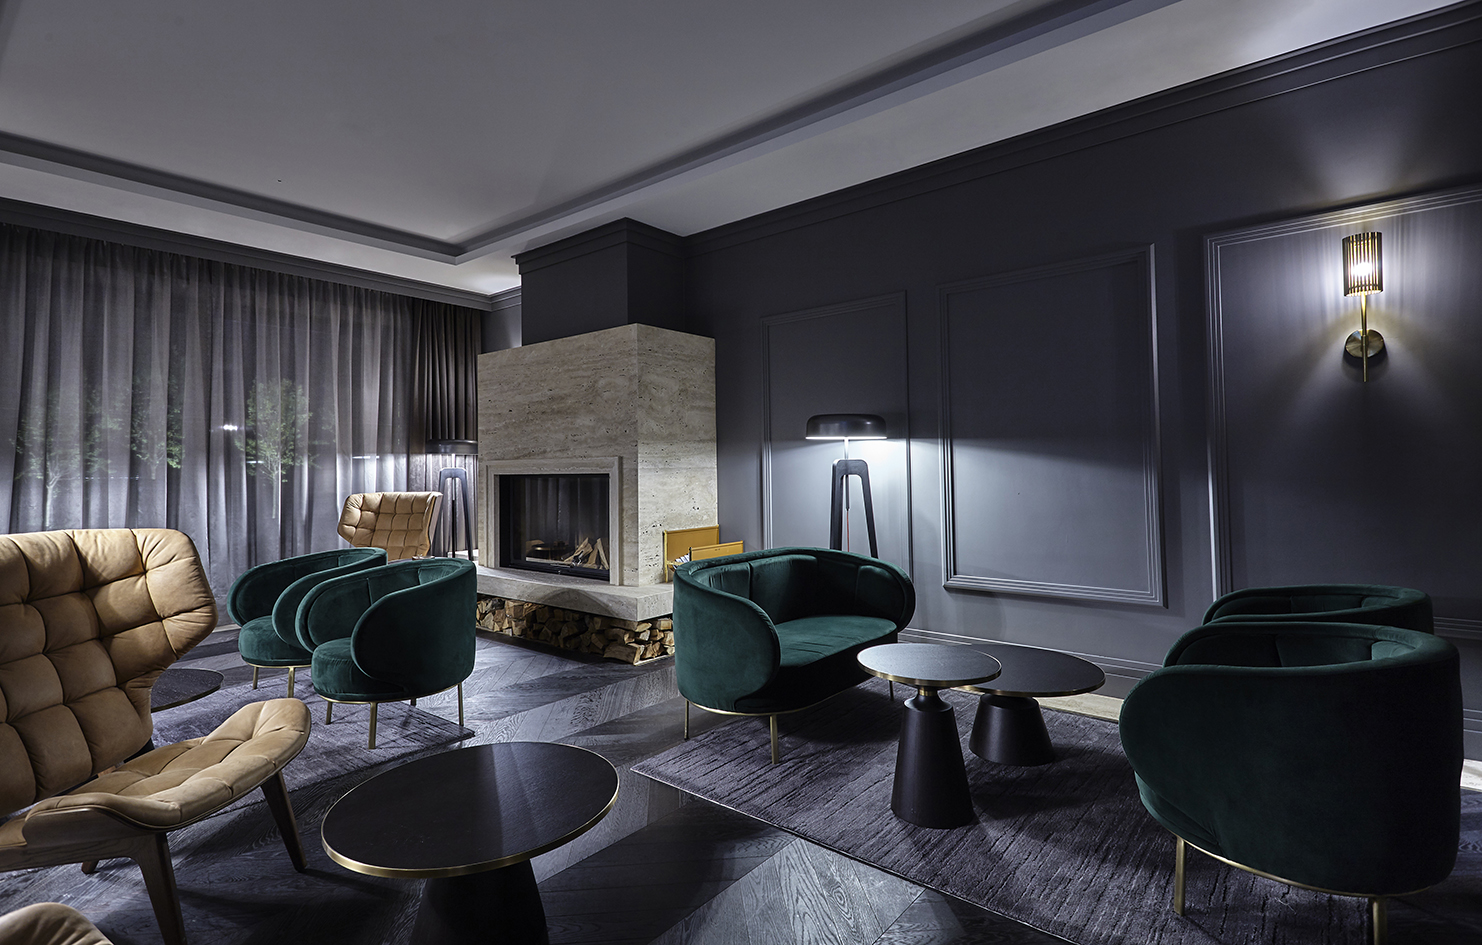 IKADOR LUXURY BOUTIQUE HOTEL & SPA  Luxurious finishes, carefully chosen materials  and bespoke furniture give fluidity to the contemporary yet timeless signature of the design   VIEW PROJECT